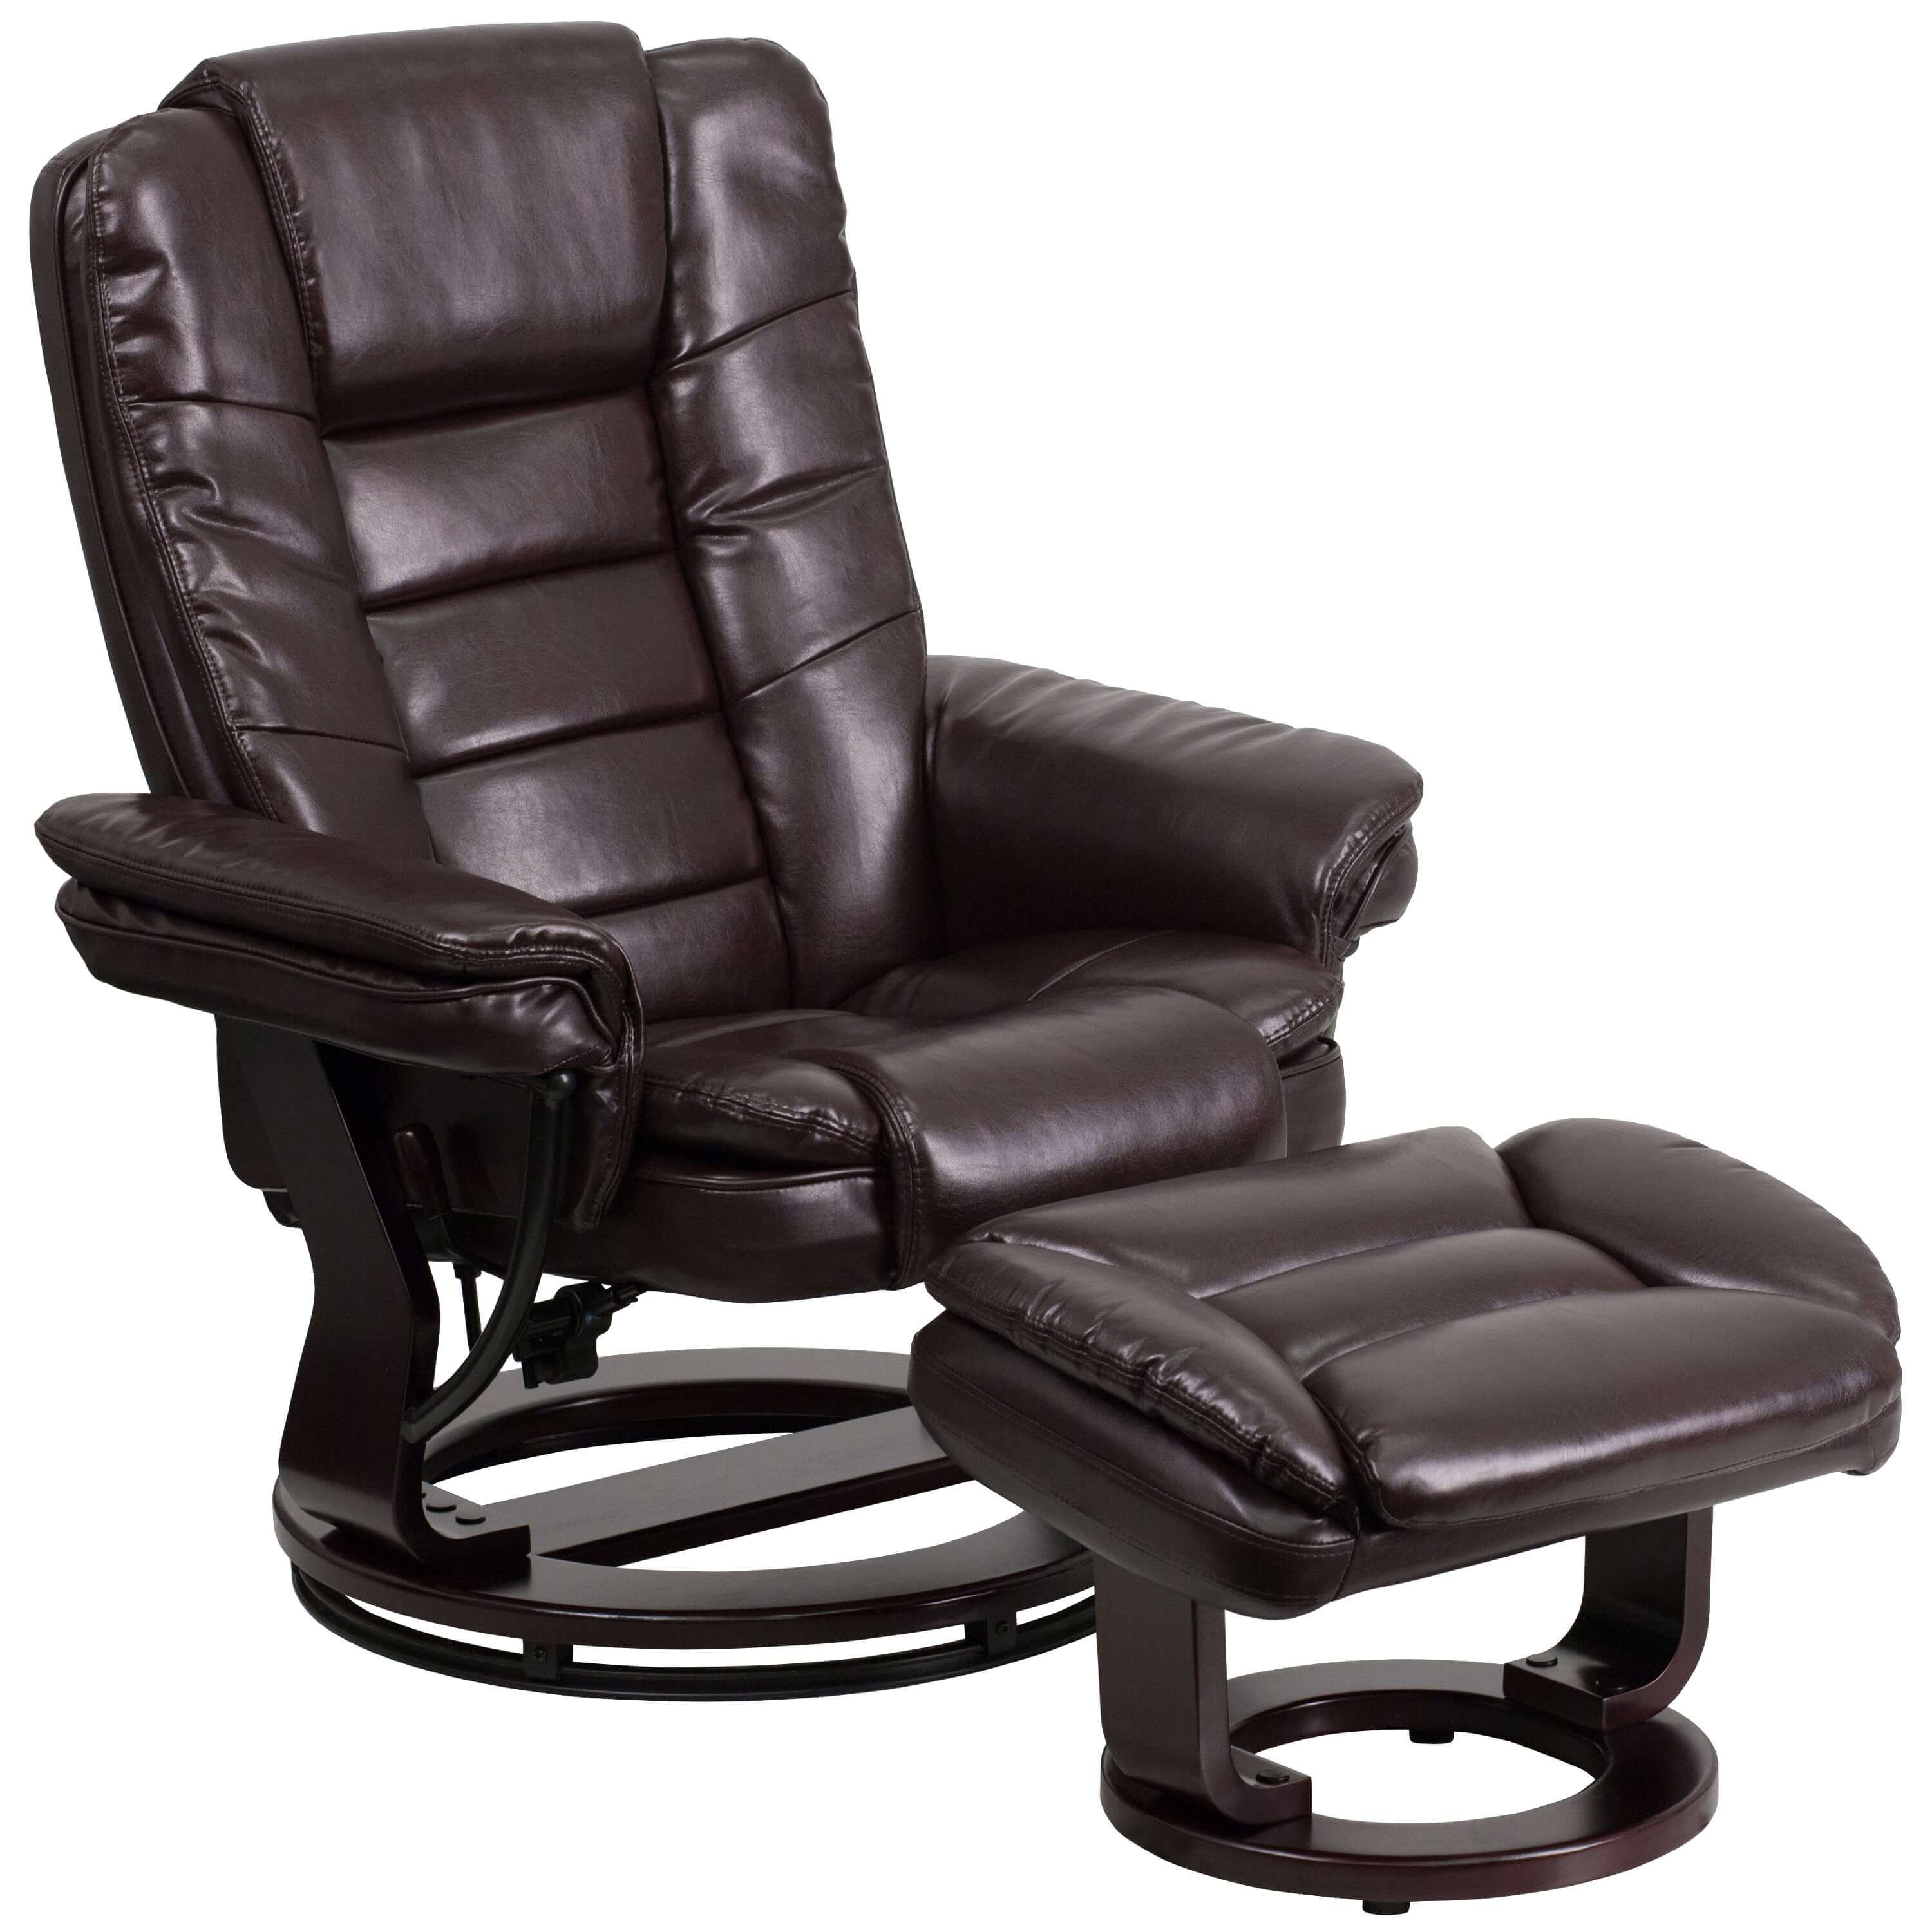 Swivel recliner swivel recliner CUB BT 7818 BN GG FLA